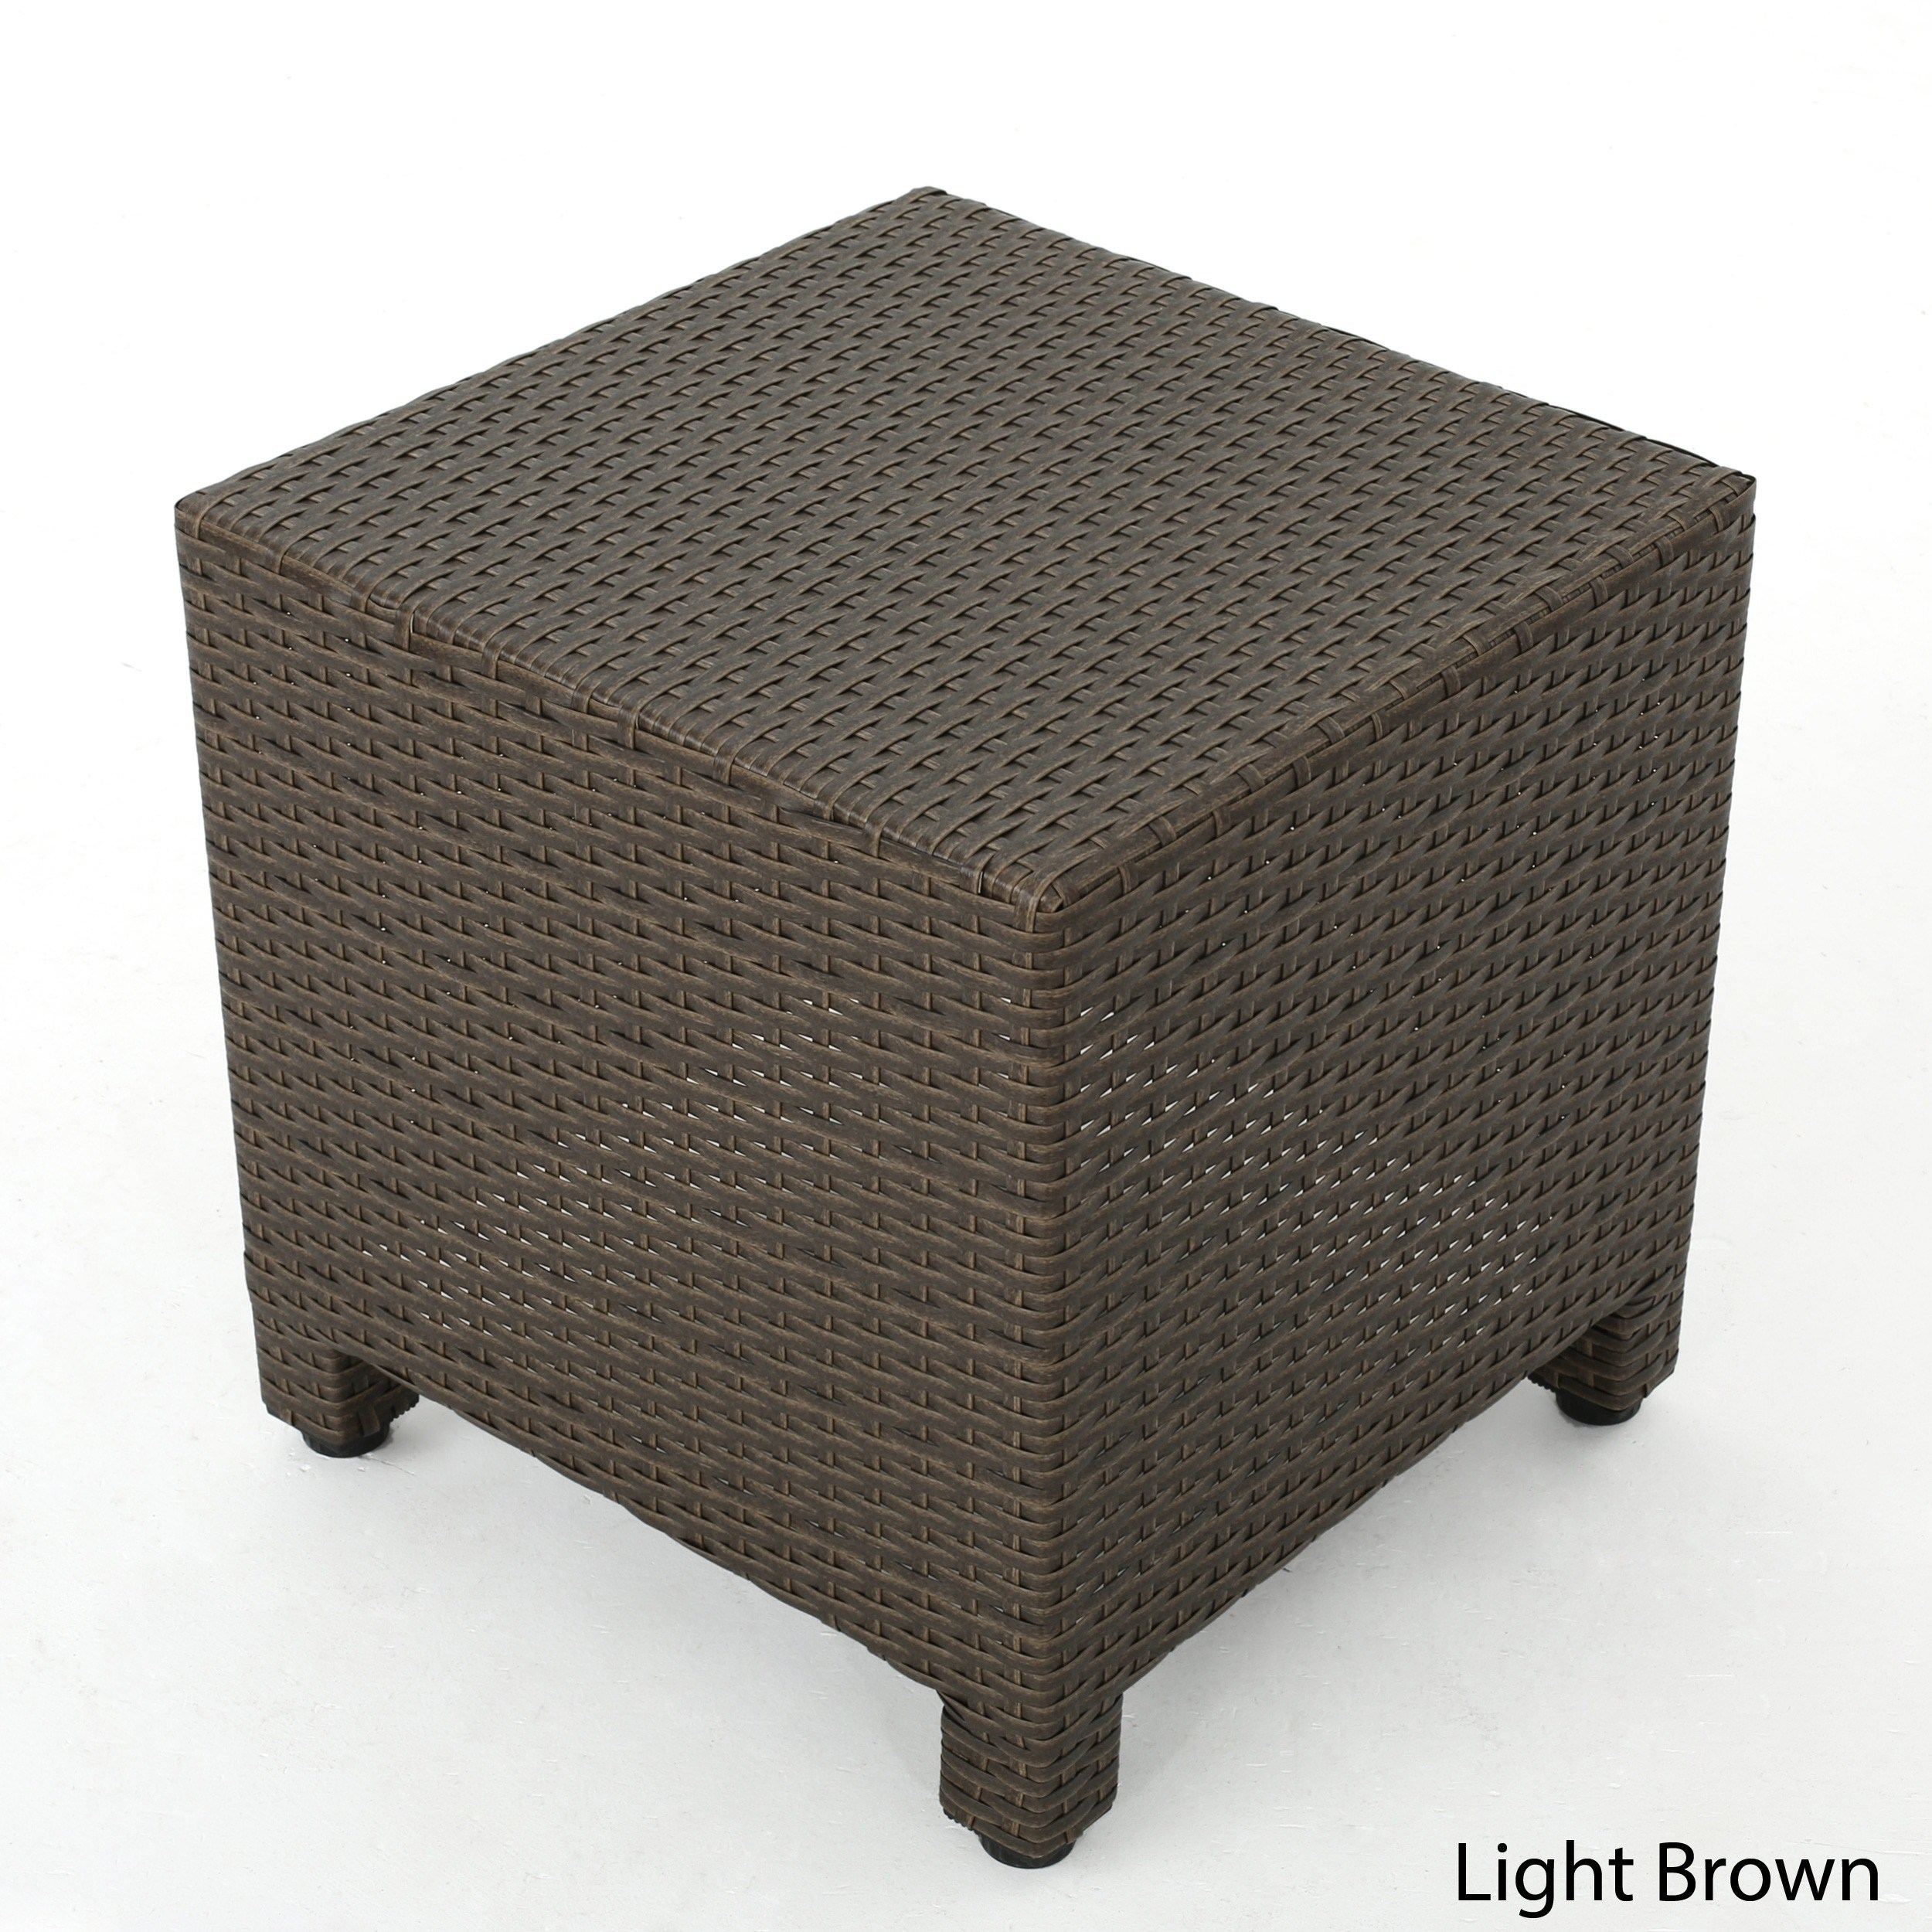 puerta outdoor wicker square accent side table christopher knight home free shipping today folding bistro hot water heater tables for small spaces with basket drawers pub style